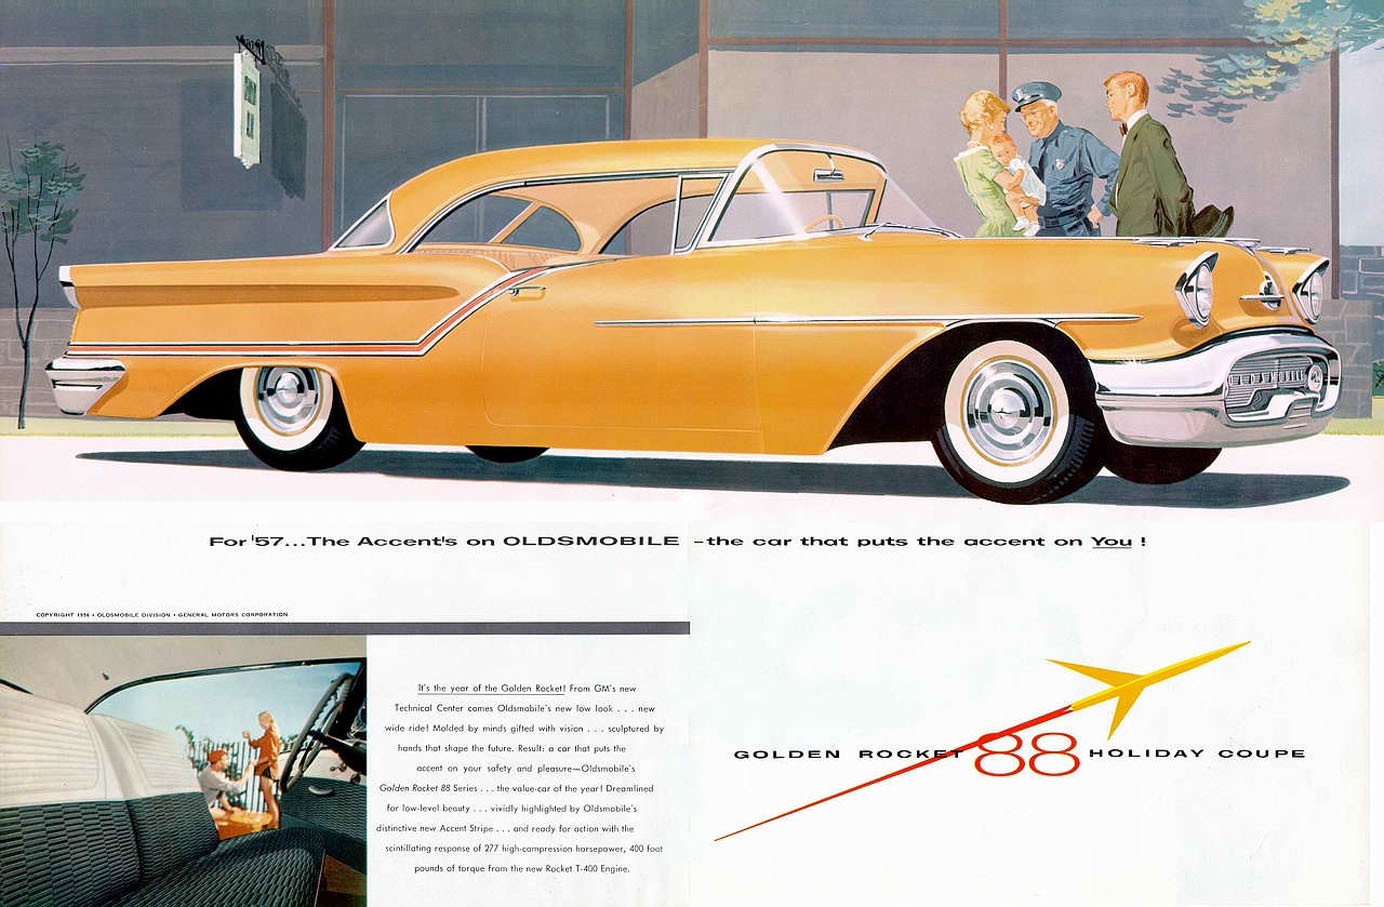 Accent On You 1957 Oldsmobile Golden Rocket 88 Chevrolet Sales Brochure Oldsmobiles For Proclaimed The Car That Puts Referencing Colored Stripe Separating Two Tone Body